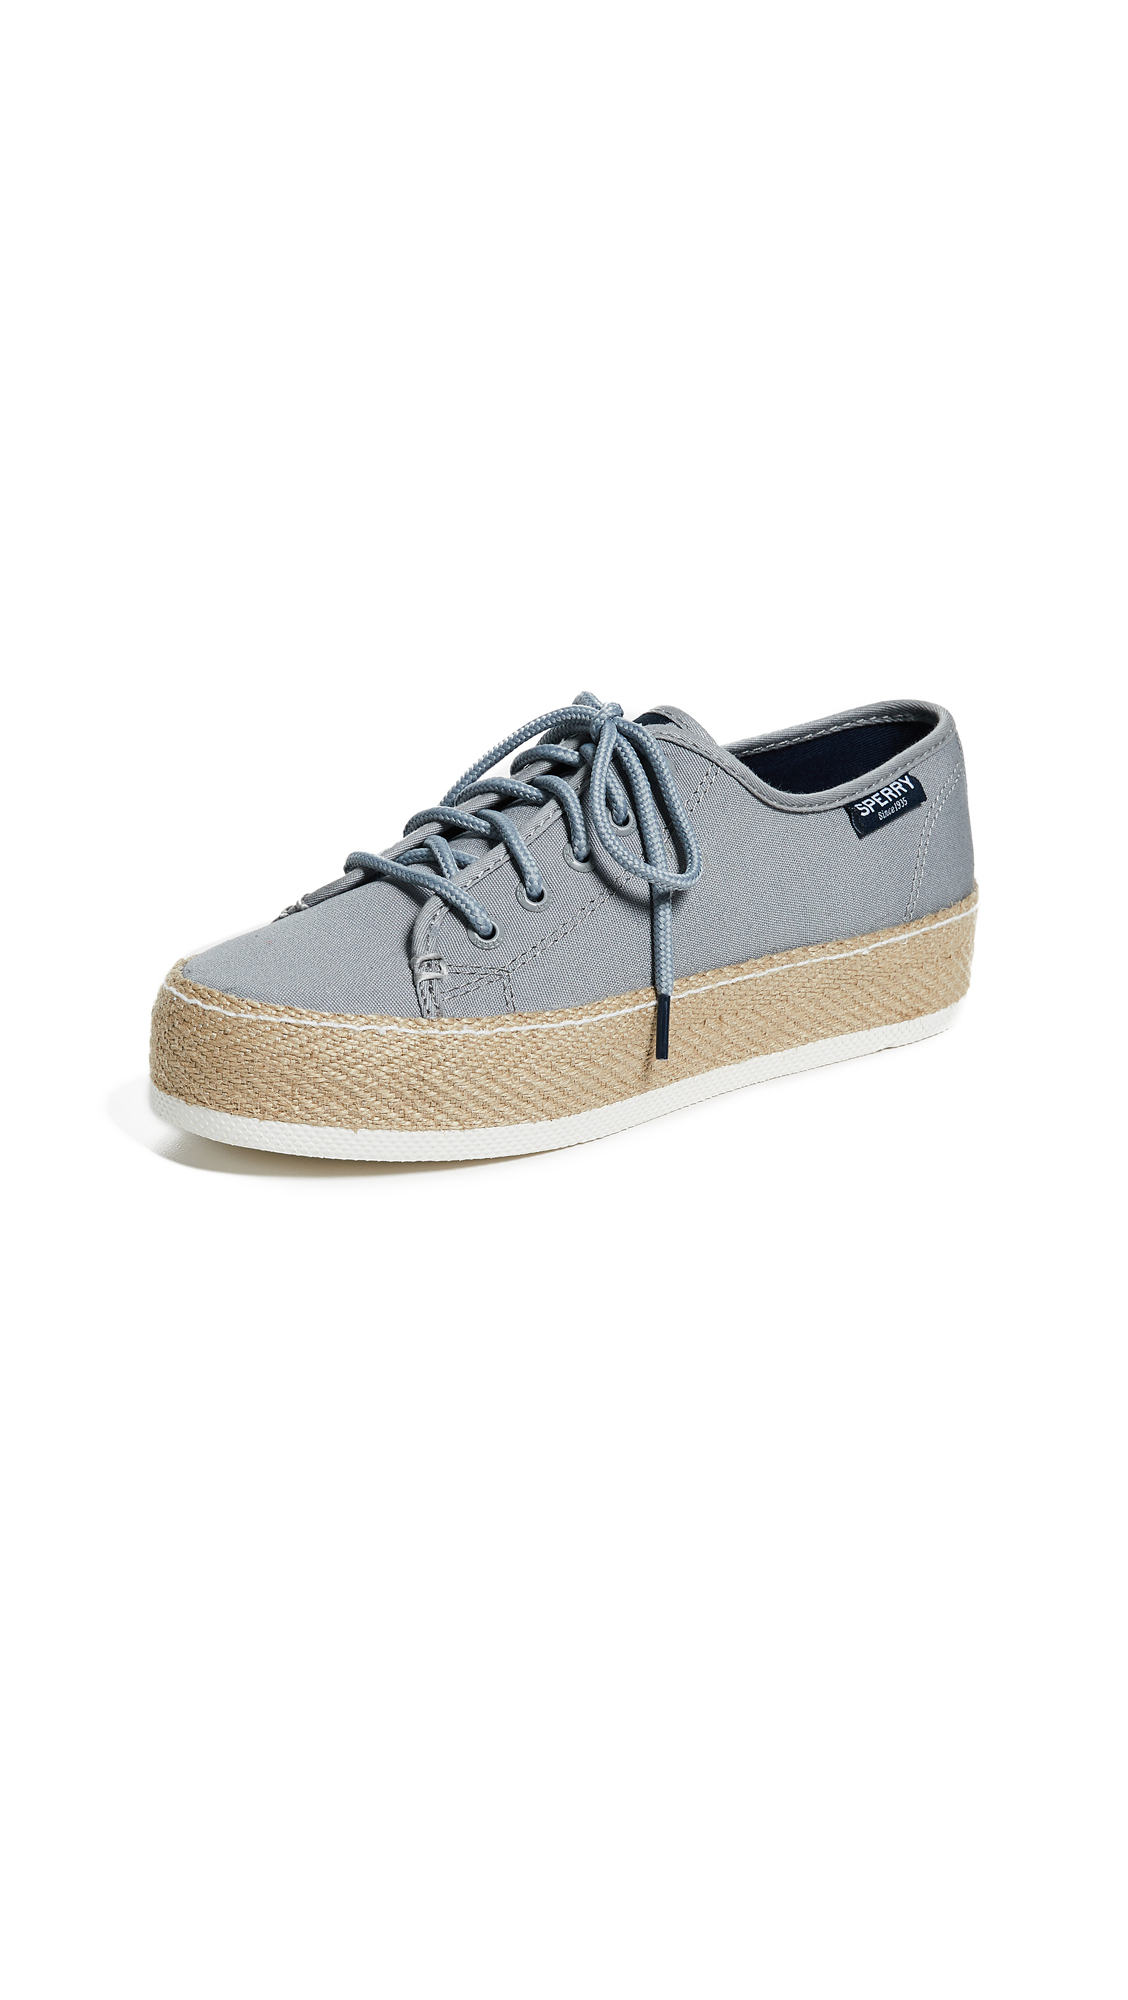 Sperry Sky Sail Jute Wrap Platform Sneakers